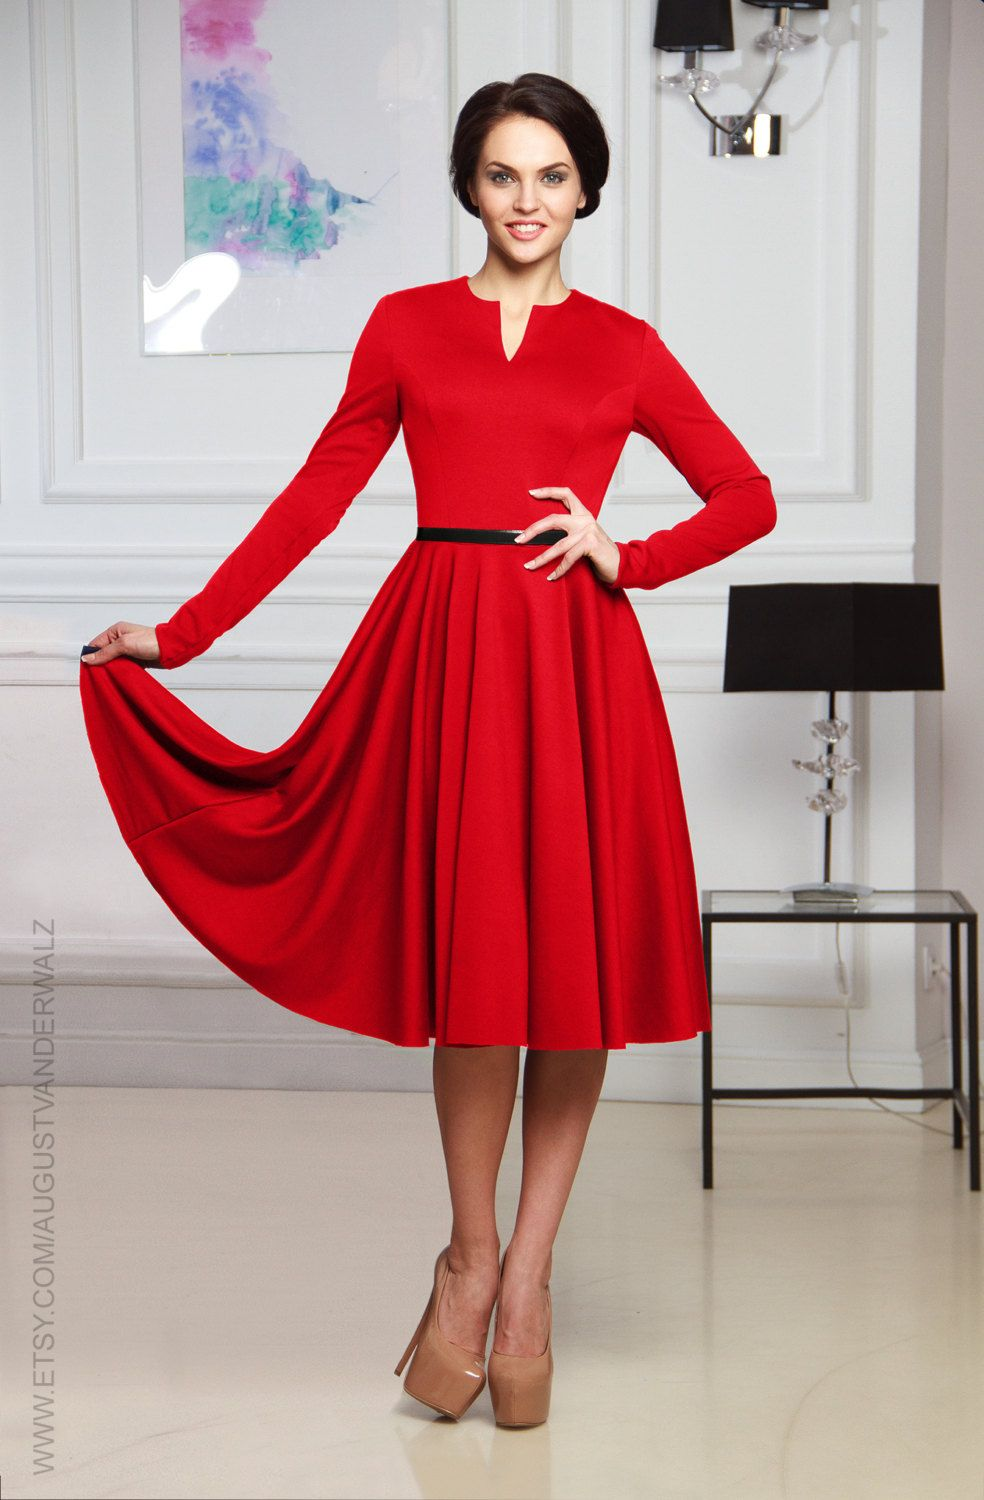 8ec6323412 Red dresses long sleeve red vcut backless batwing maxi dress Фэшн ...